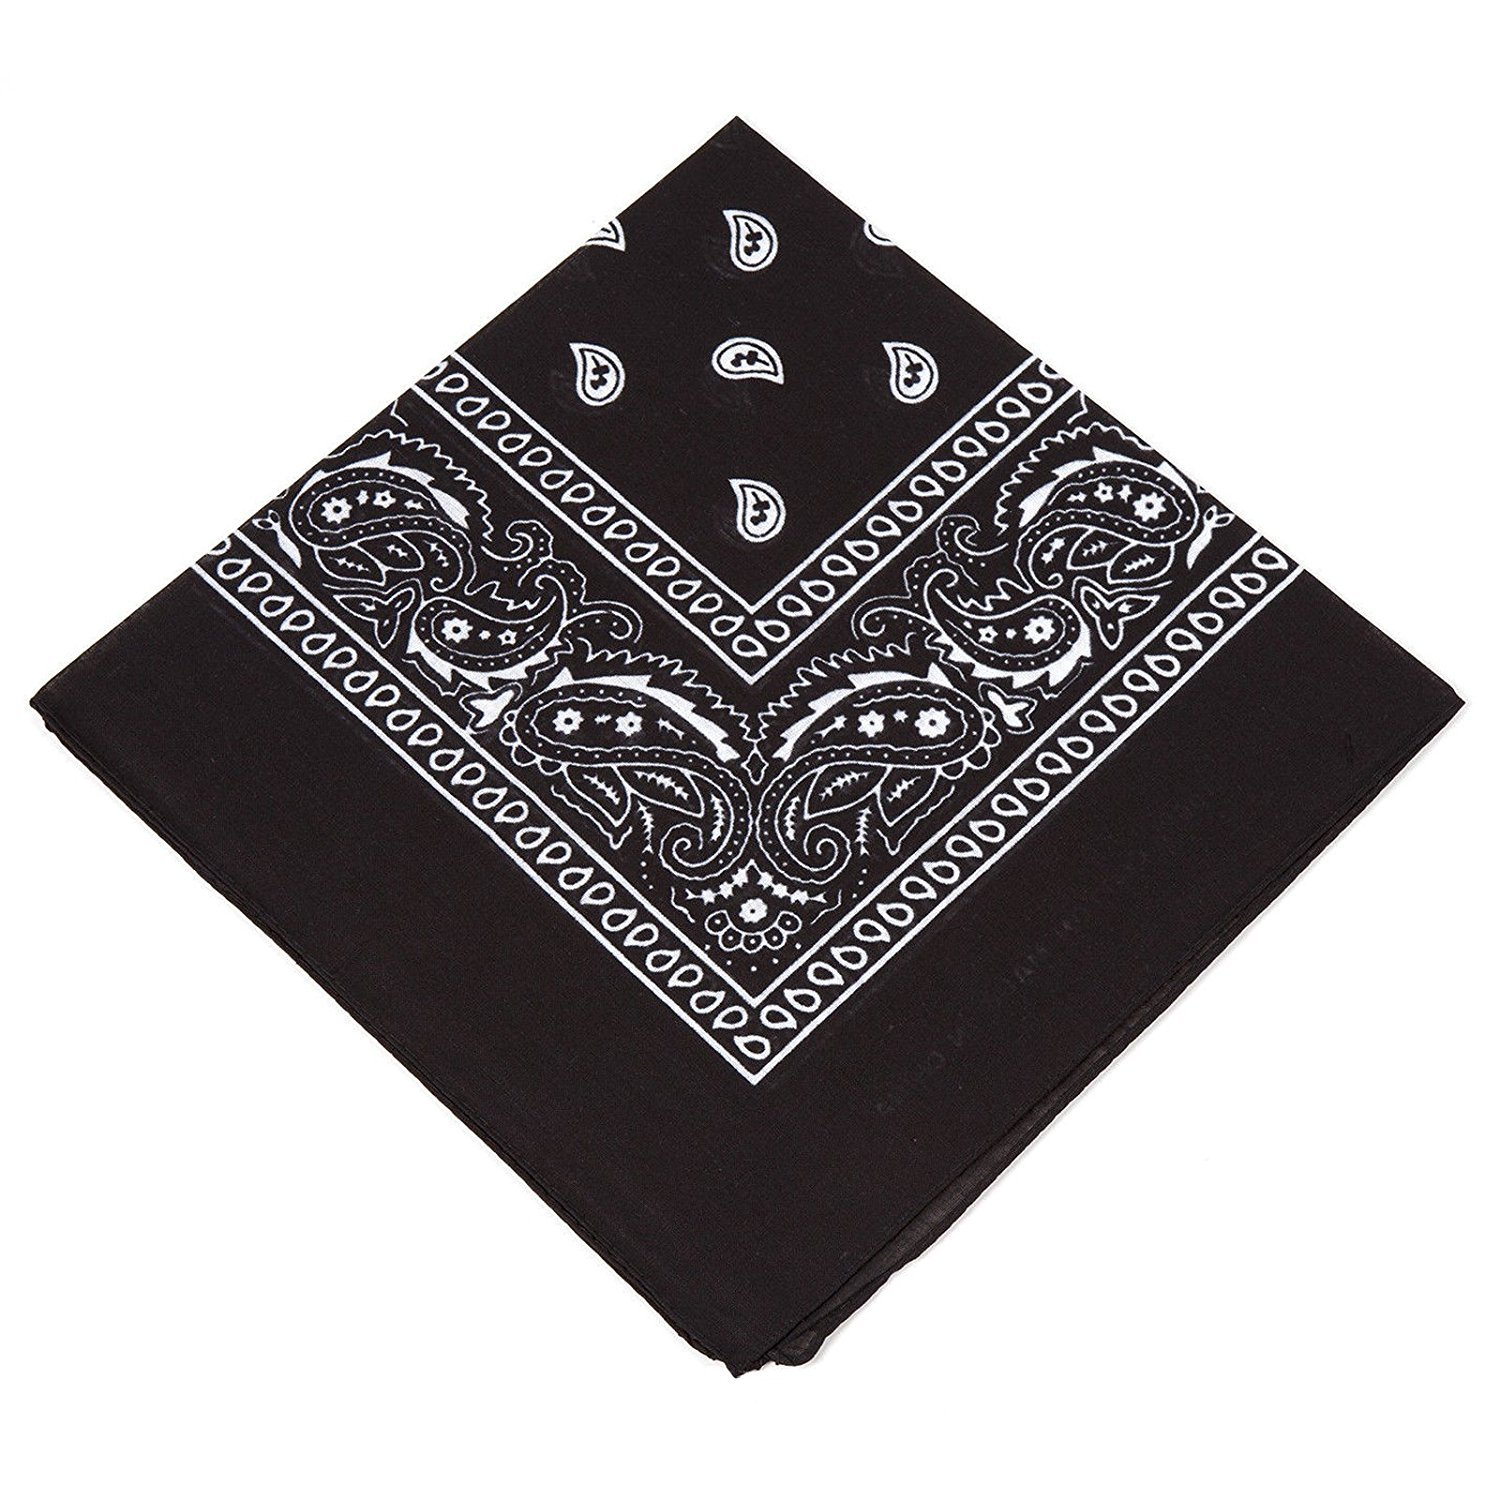 For Men 100/% Cotton Excellent quality Set of 2 X Black Bandana // Neck scarf // Hankerchief // Head tie // Neck Tie // Neckerchief with Paisley design Women /& Kids